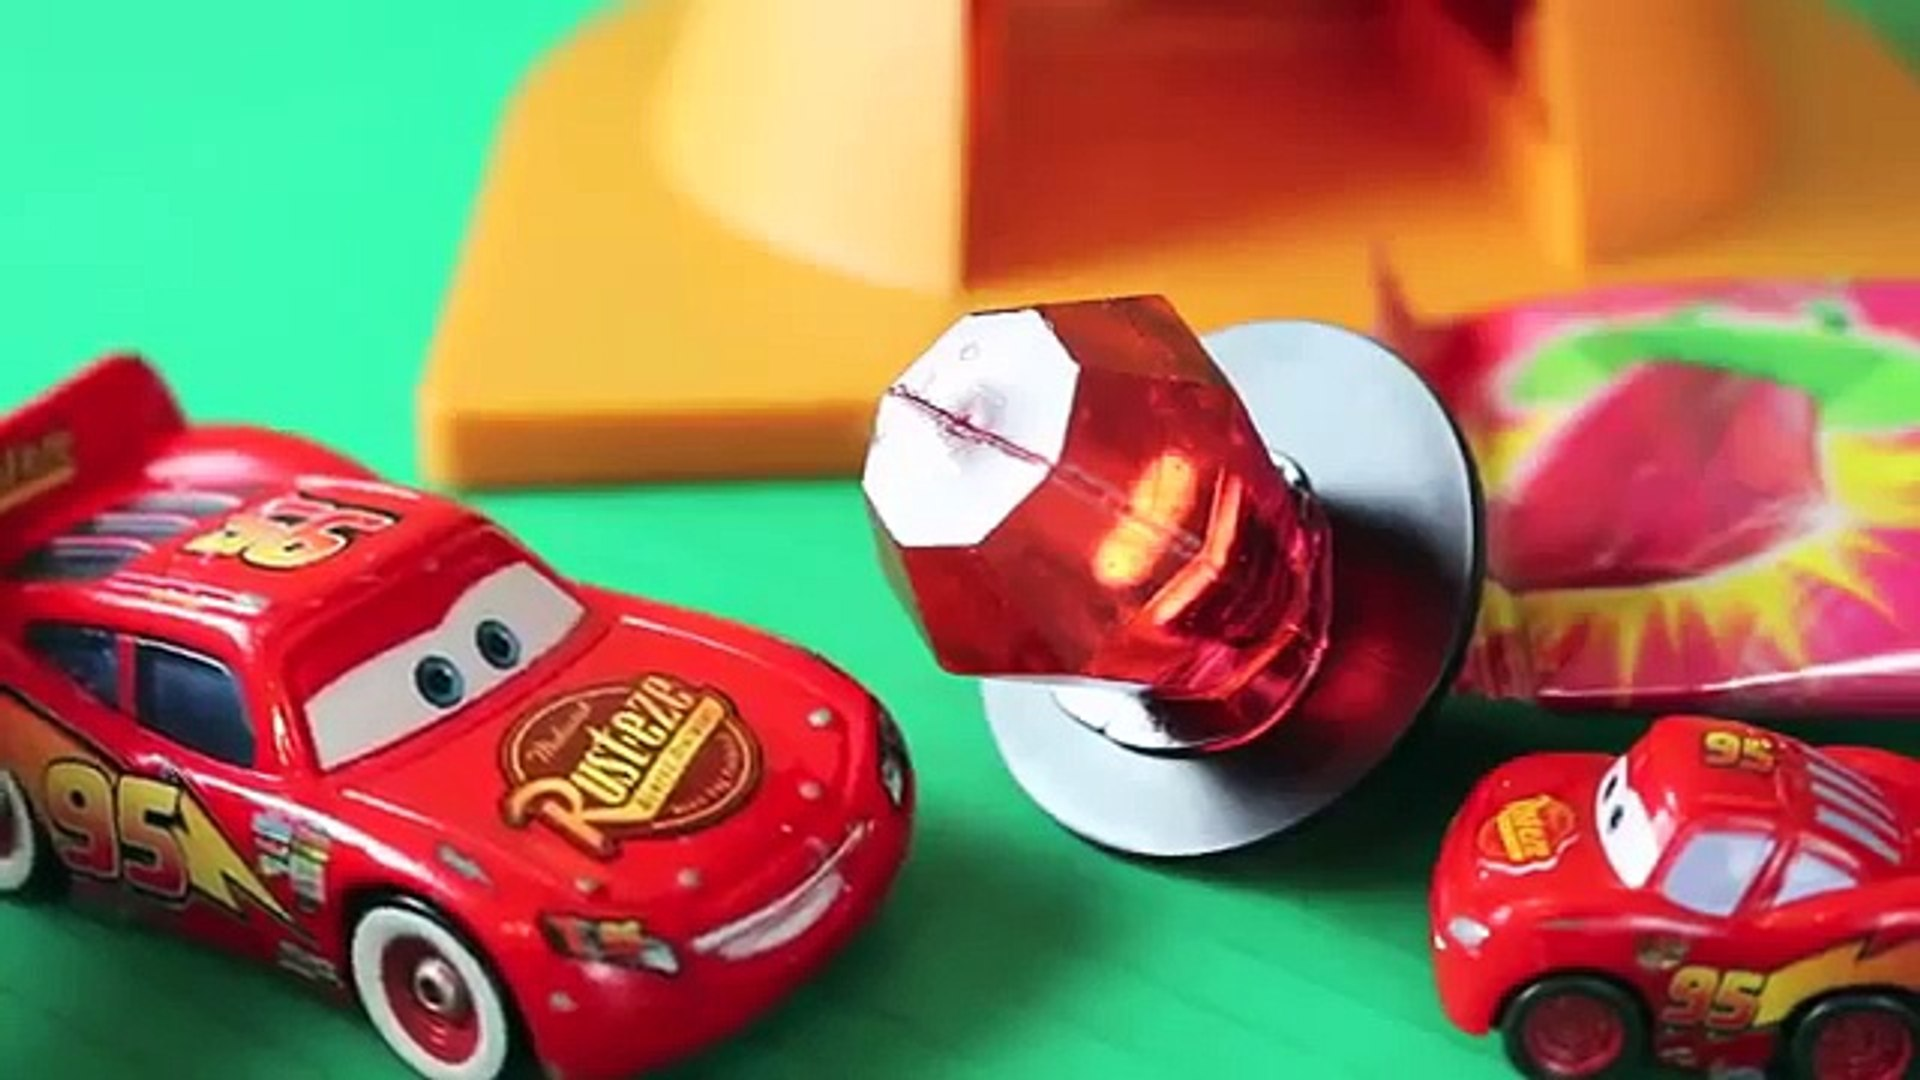 Play Doh Candy Ring Pop with Disney Cars Lightning McQueen Family Play Doh Tutorial DisneyCarToys